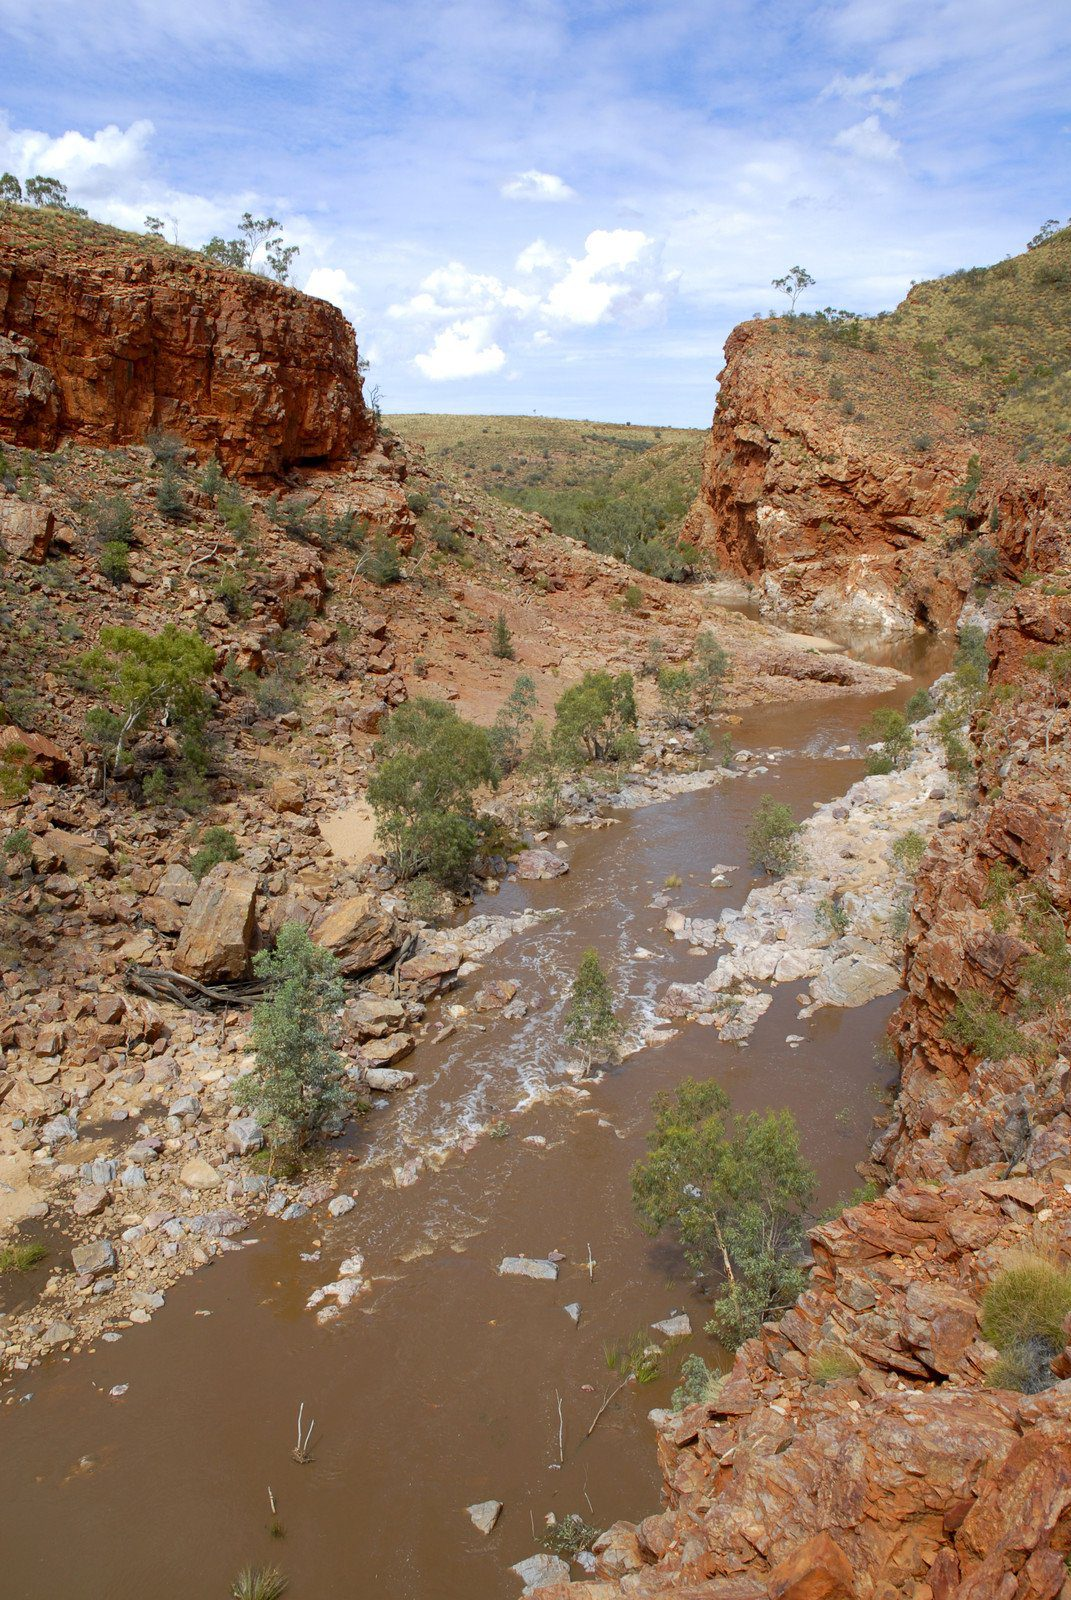 Ormiston Gorge, in the West McDonnell Ranges near Alice Springs, Northern Territory Australia